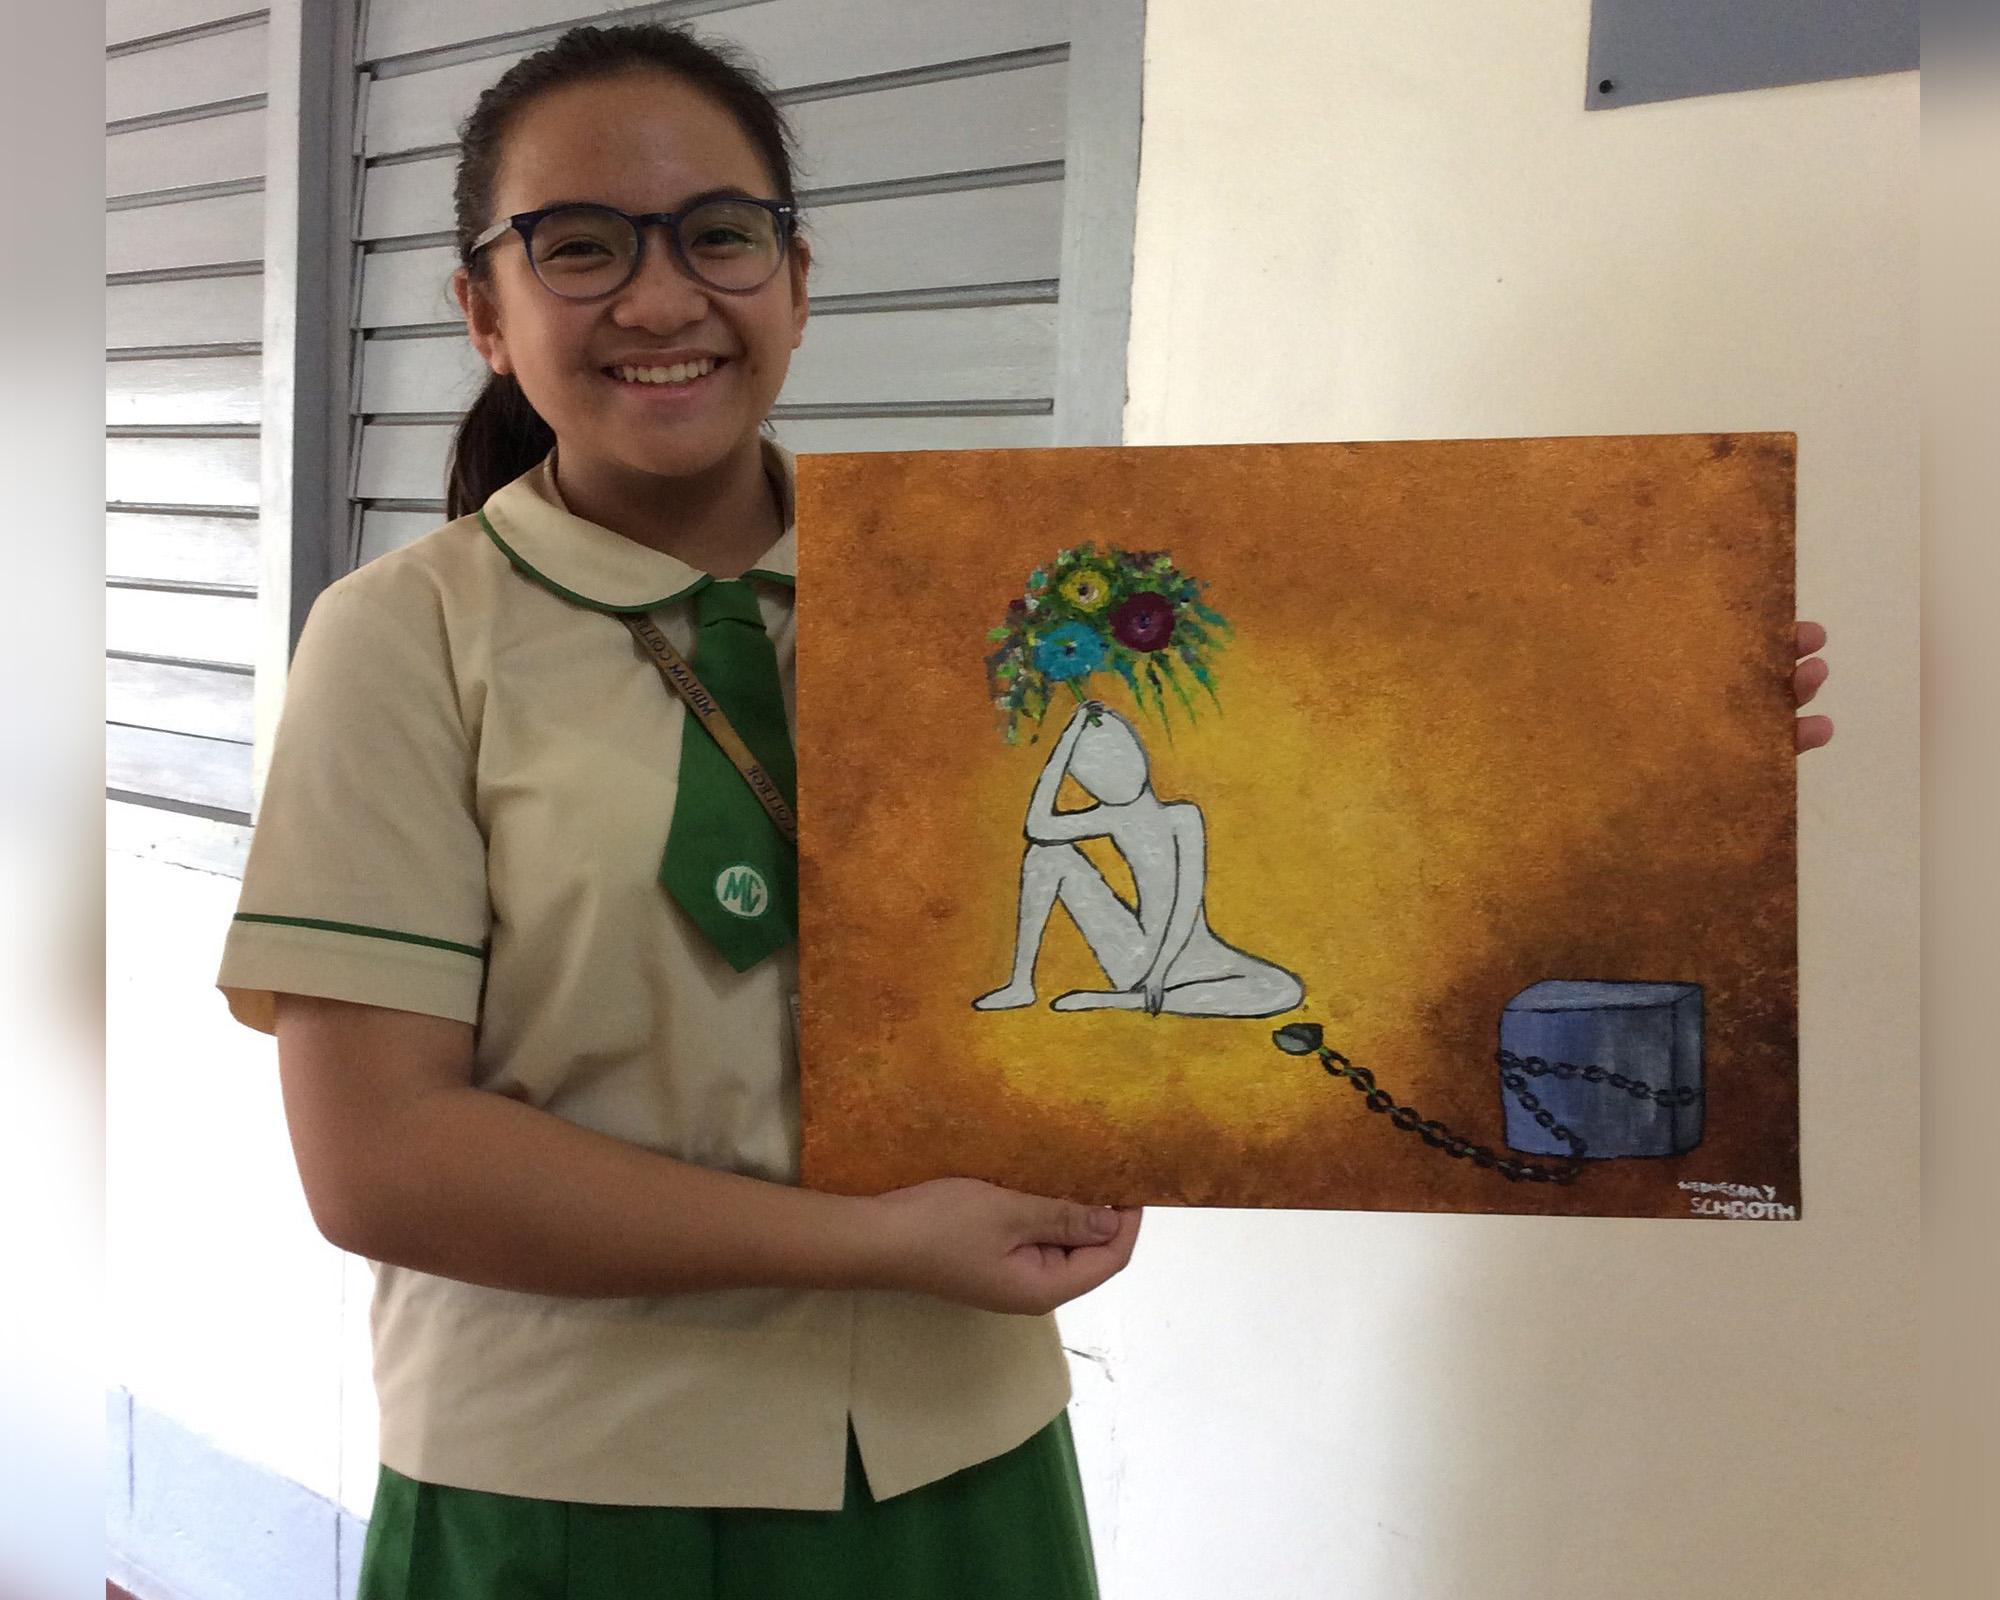 MCMS artist wins in international art contest